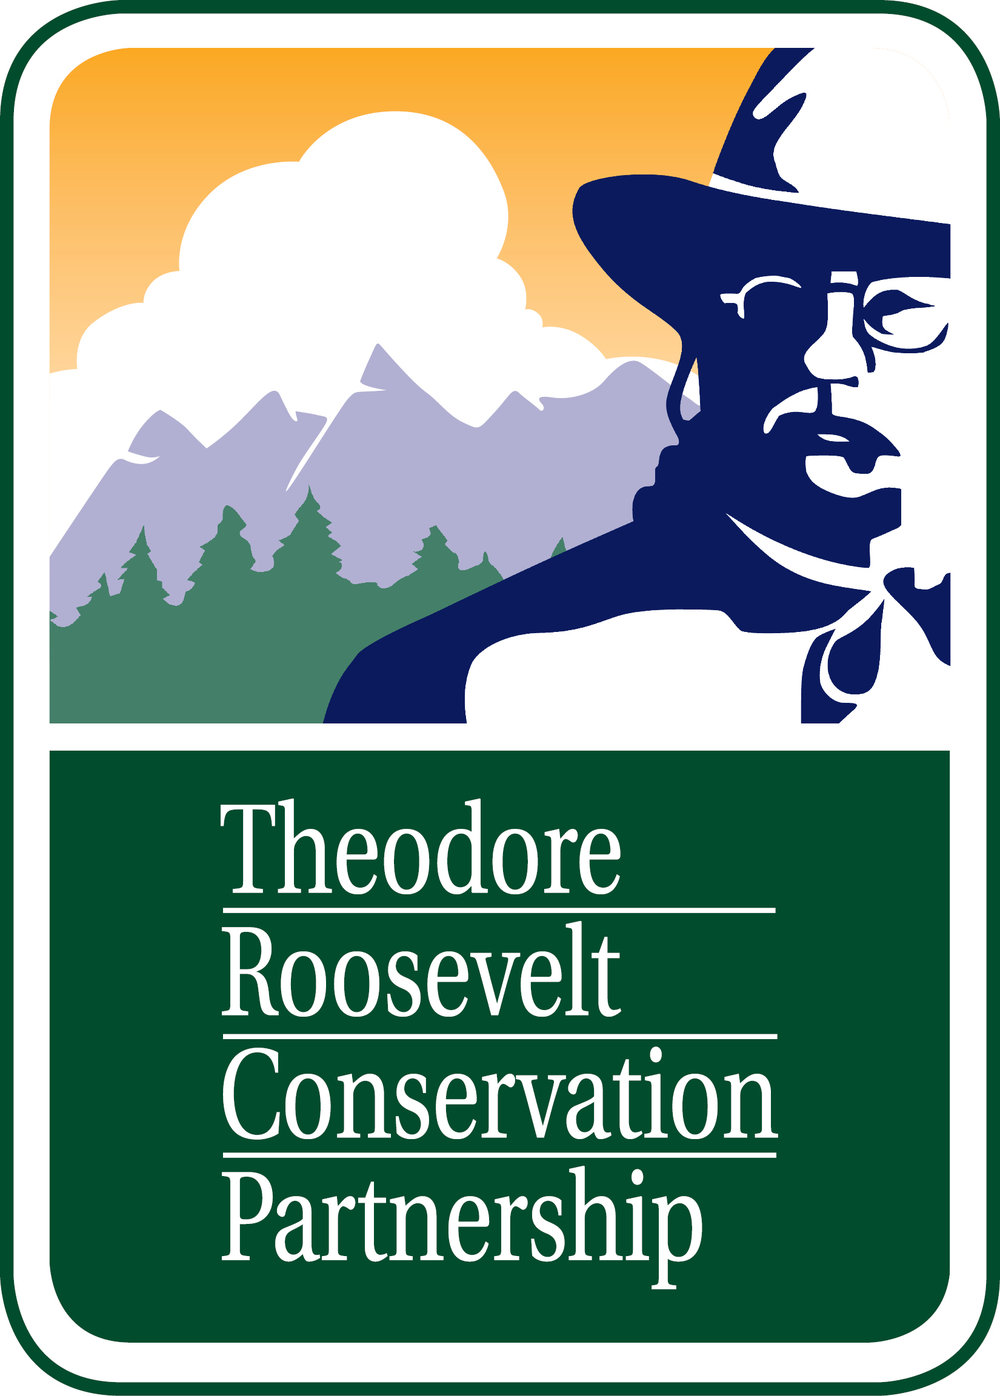 Theodore Roosevelt Conservation Partnership - The primary objective of the TRCT is to ensure that all Americans have a quality place to hunt and fish by creating federal policy and finding solutions to preserve our public land. They are doing some incredible work to ensure future access to public lands. Learn more at www.trcp.org.